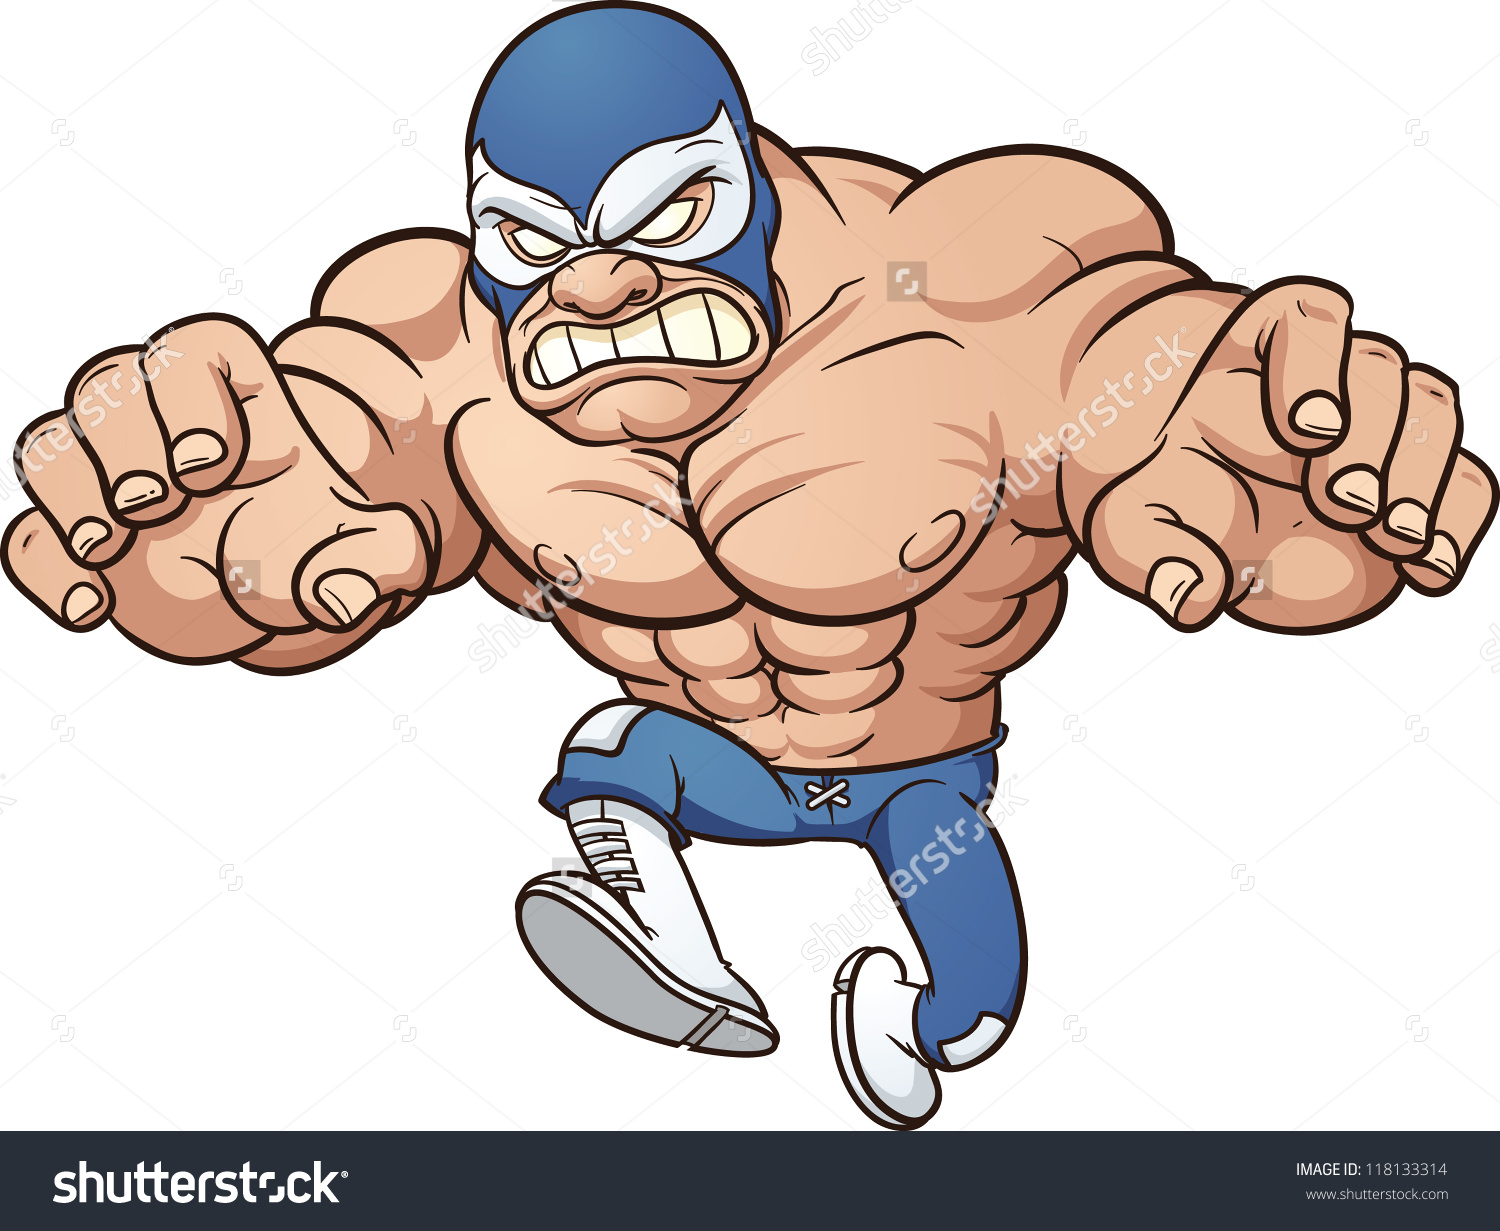 Superhero Wrestling Clipart.